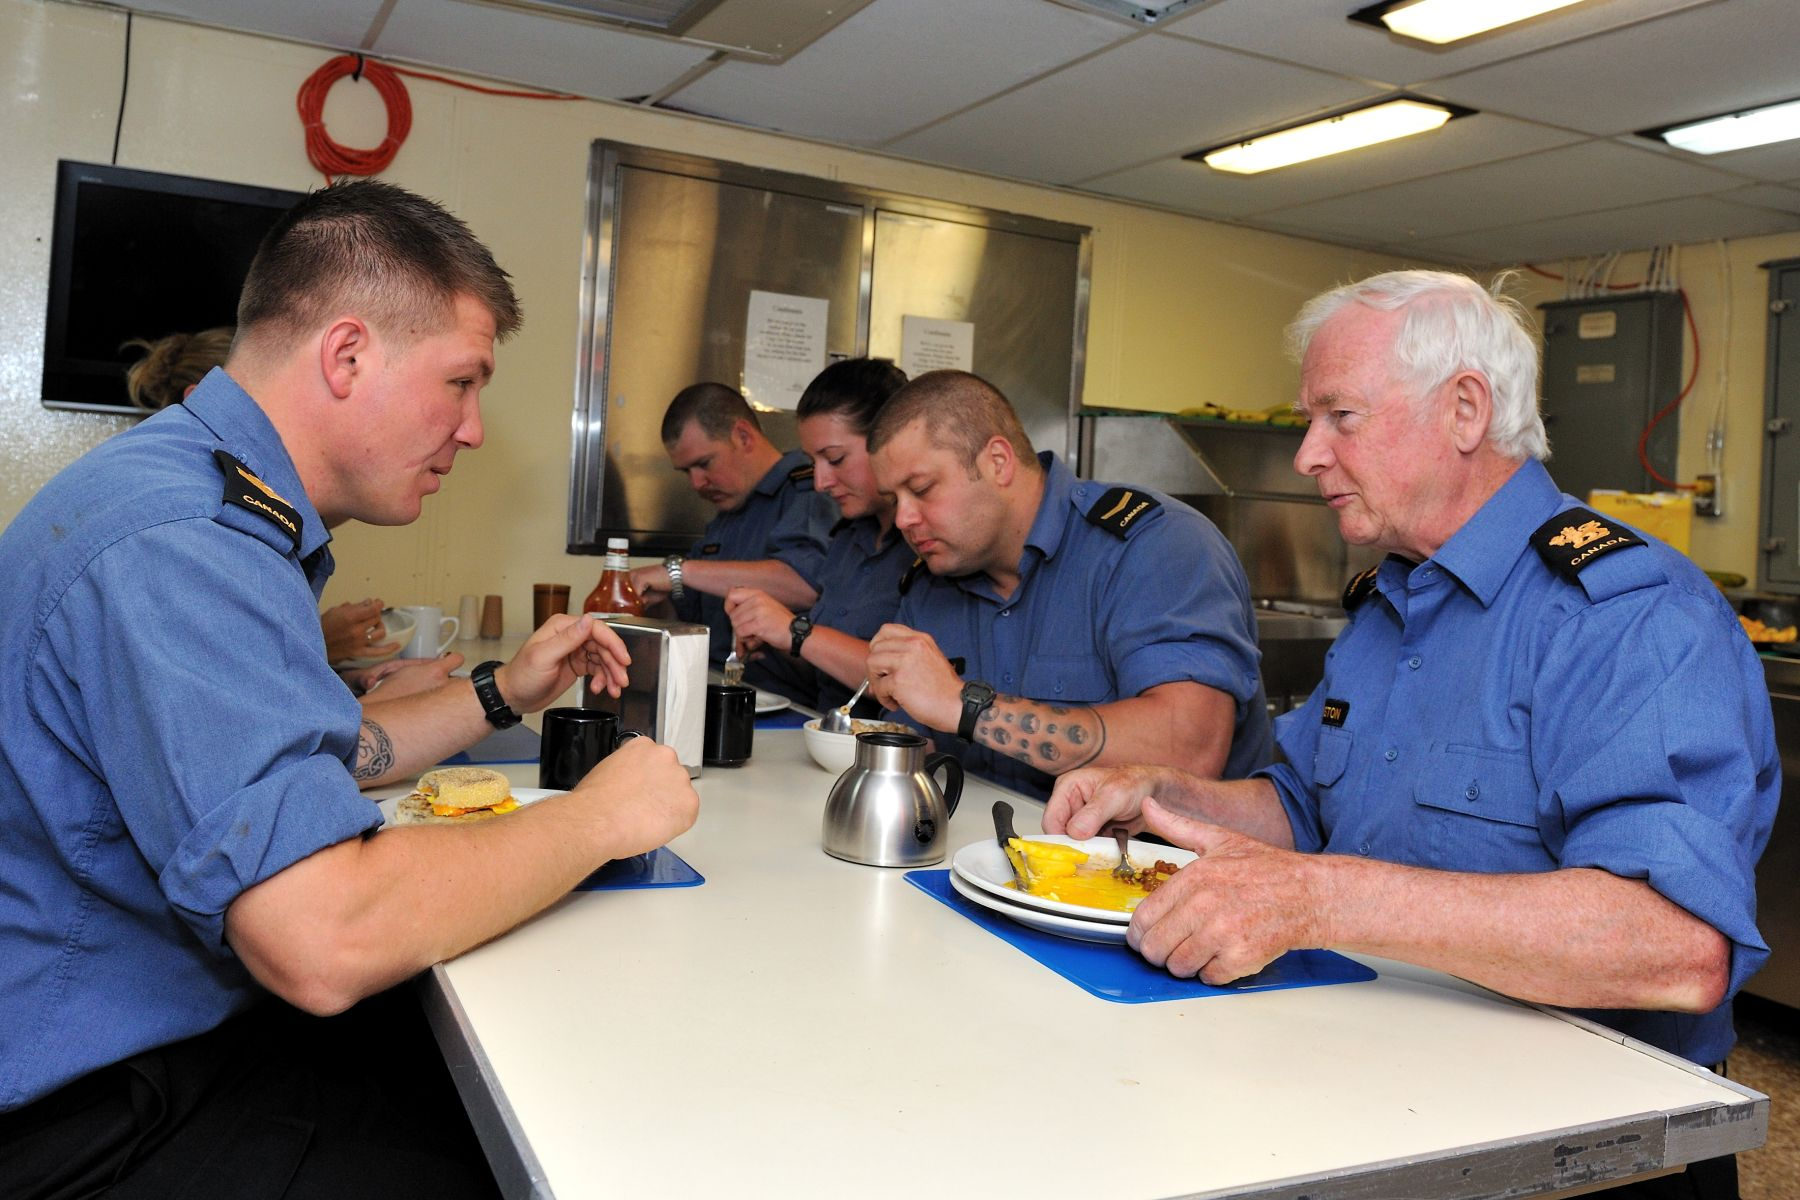 He had the opportunity to meet and talk with sailors during breakfast.